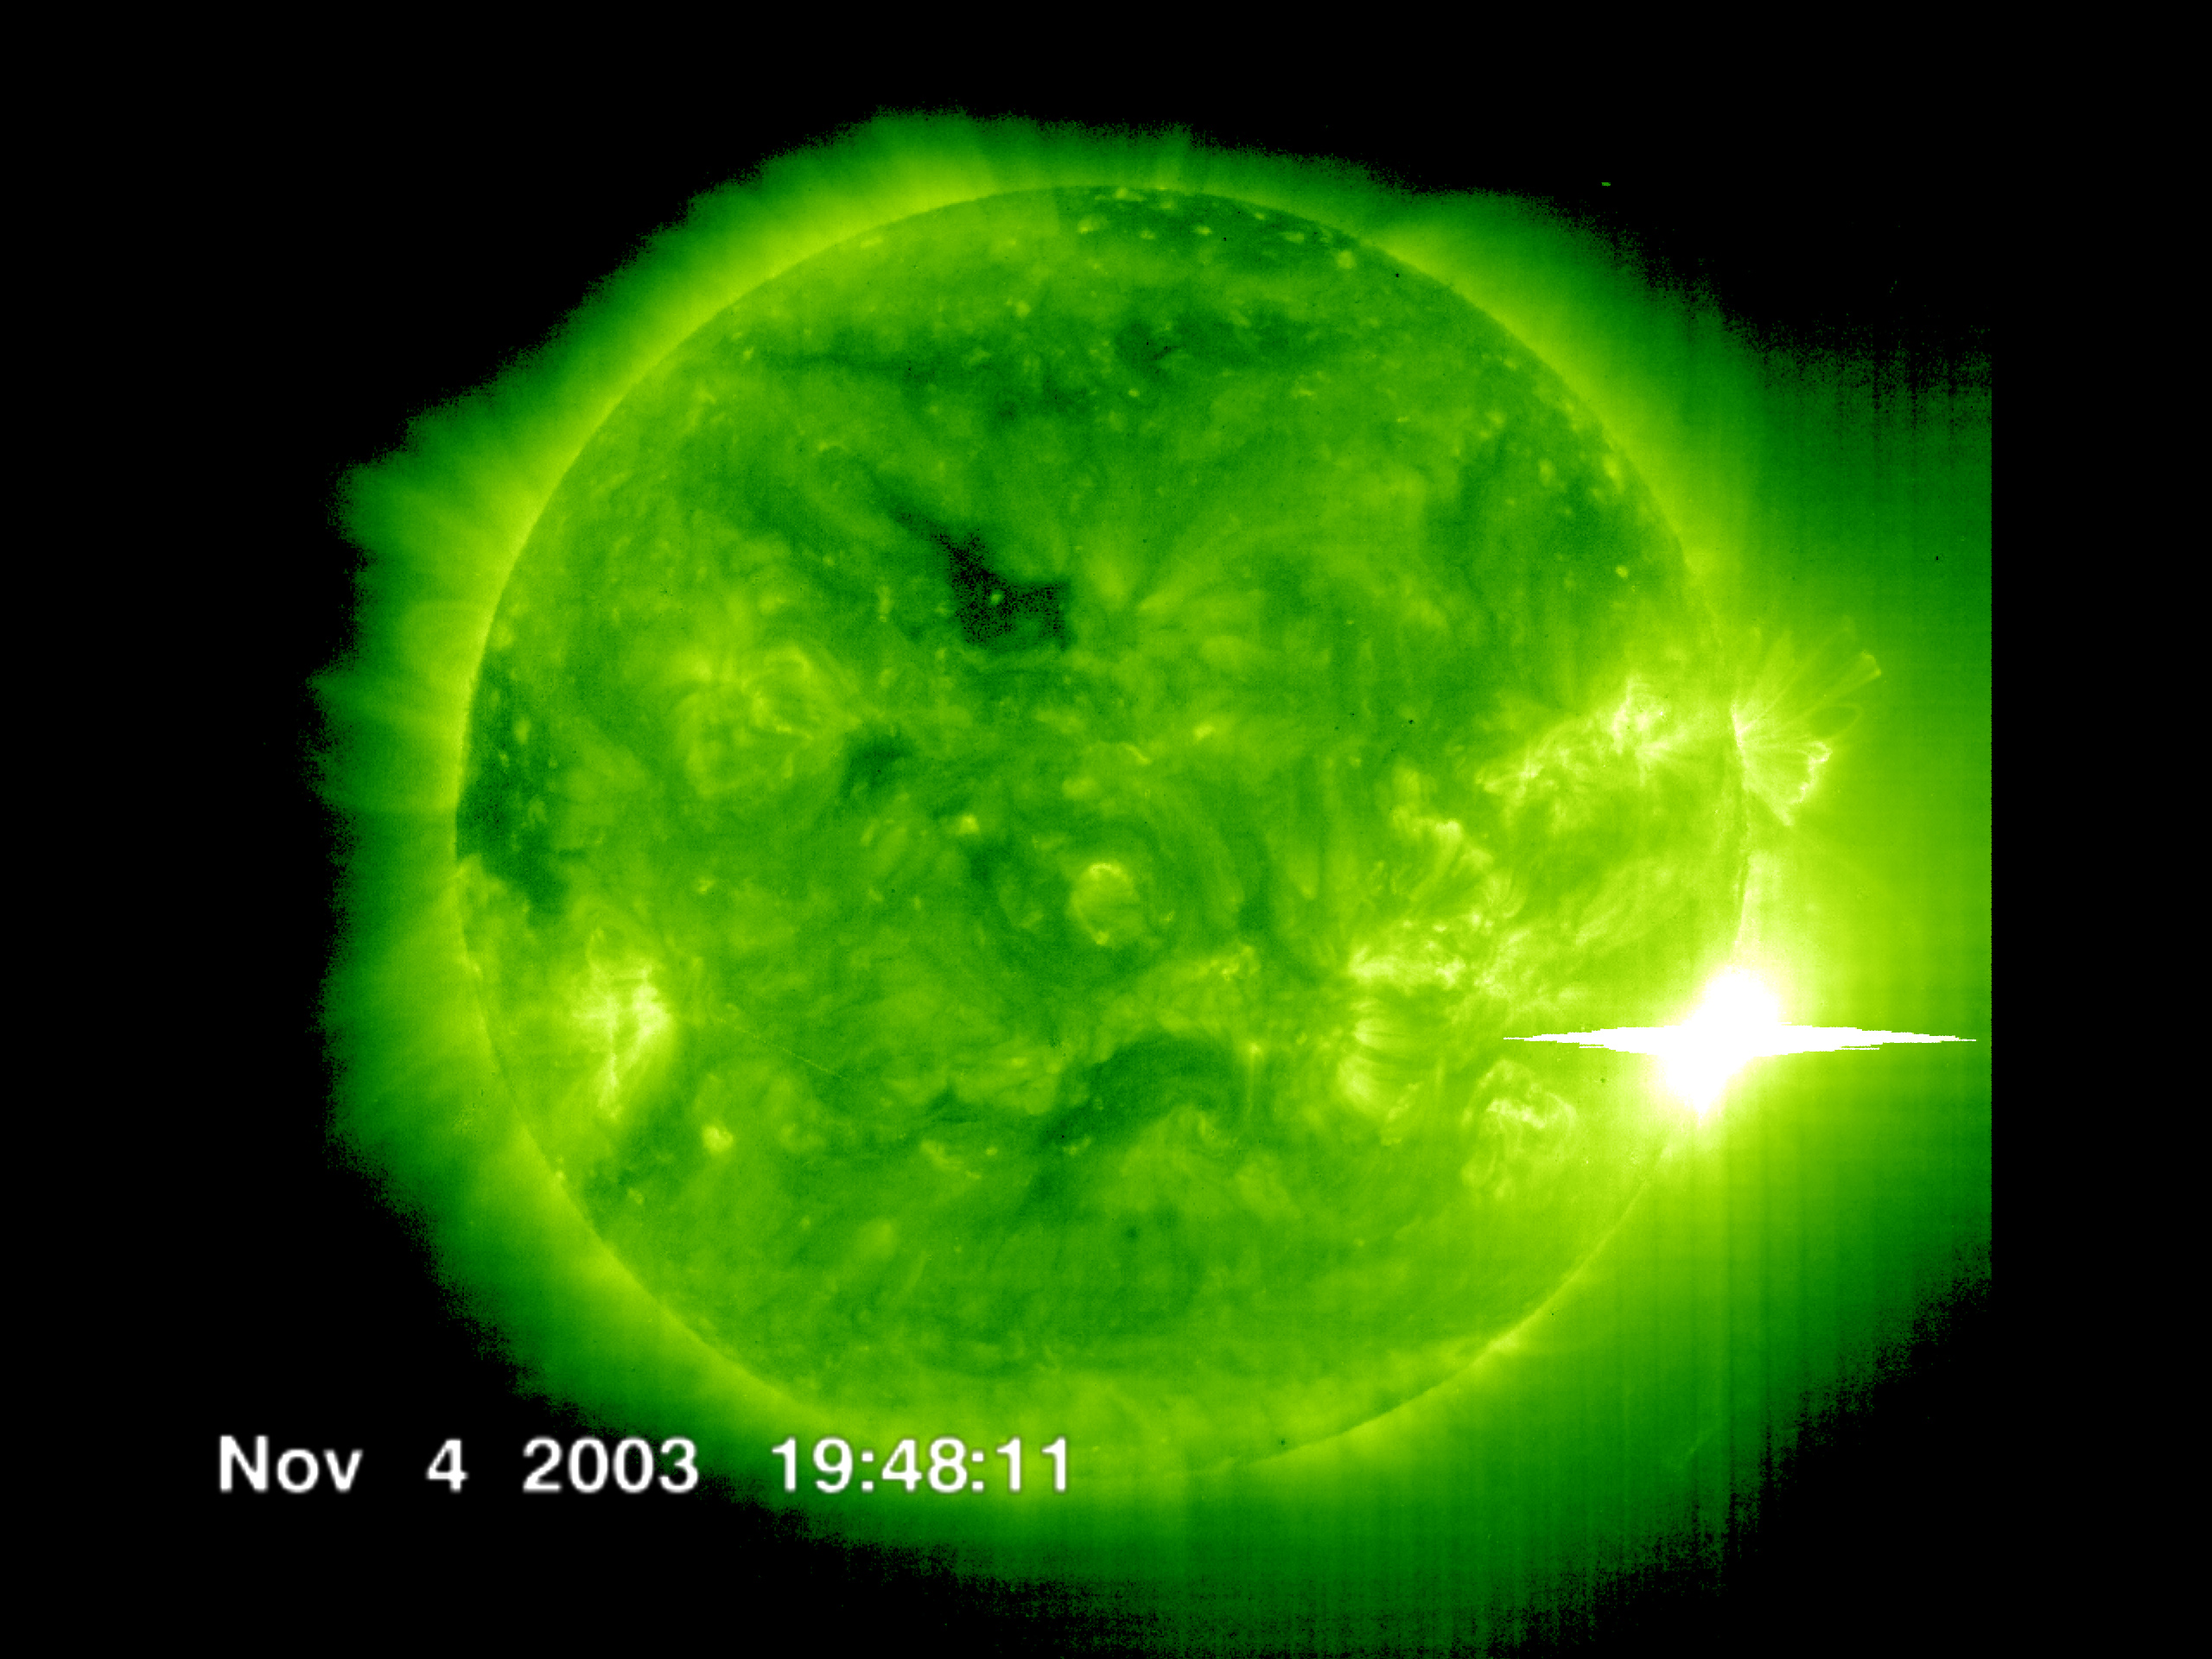 The Solar and Heliospheric Observatory spacecraft captured this image of a solar flare as it erupted from the sun early on Nov 4, 2003. This was the most powerful flare measured with modern methods. Credit: ESA and NASA/SOHO